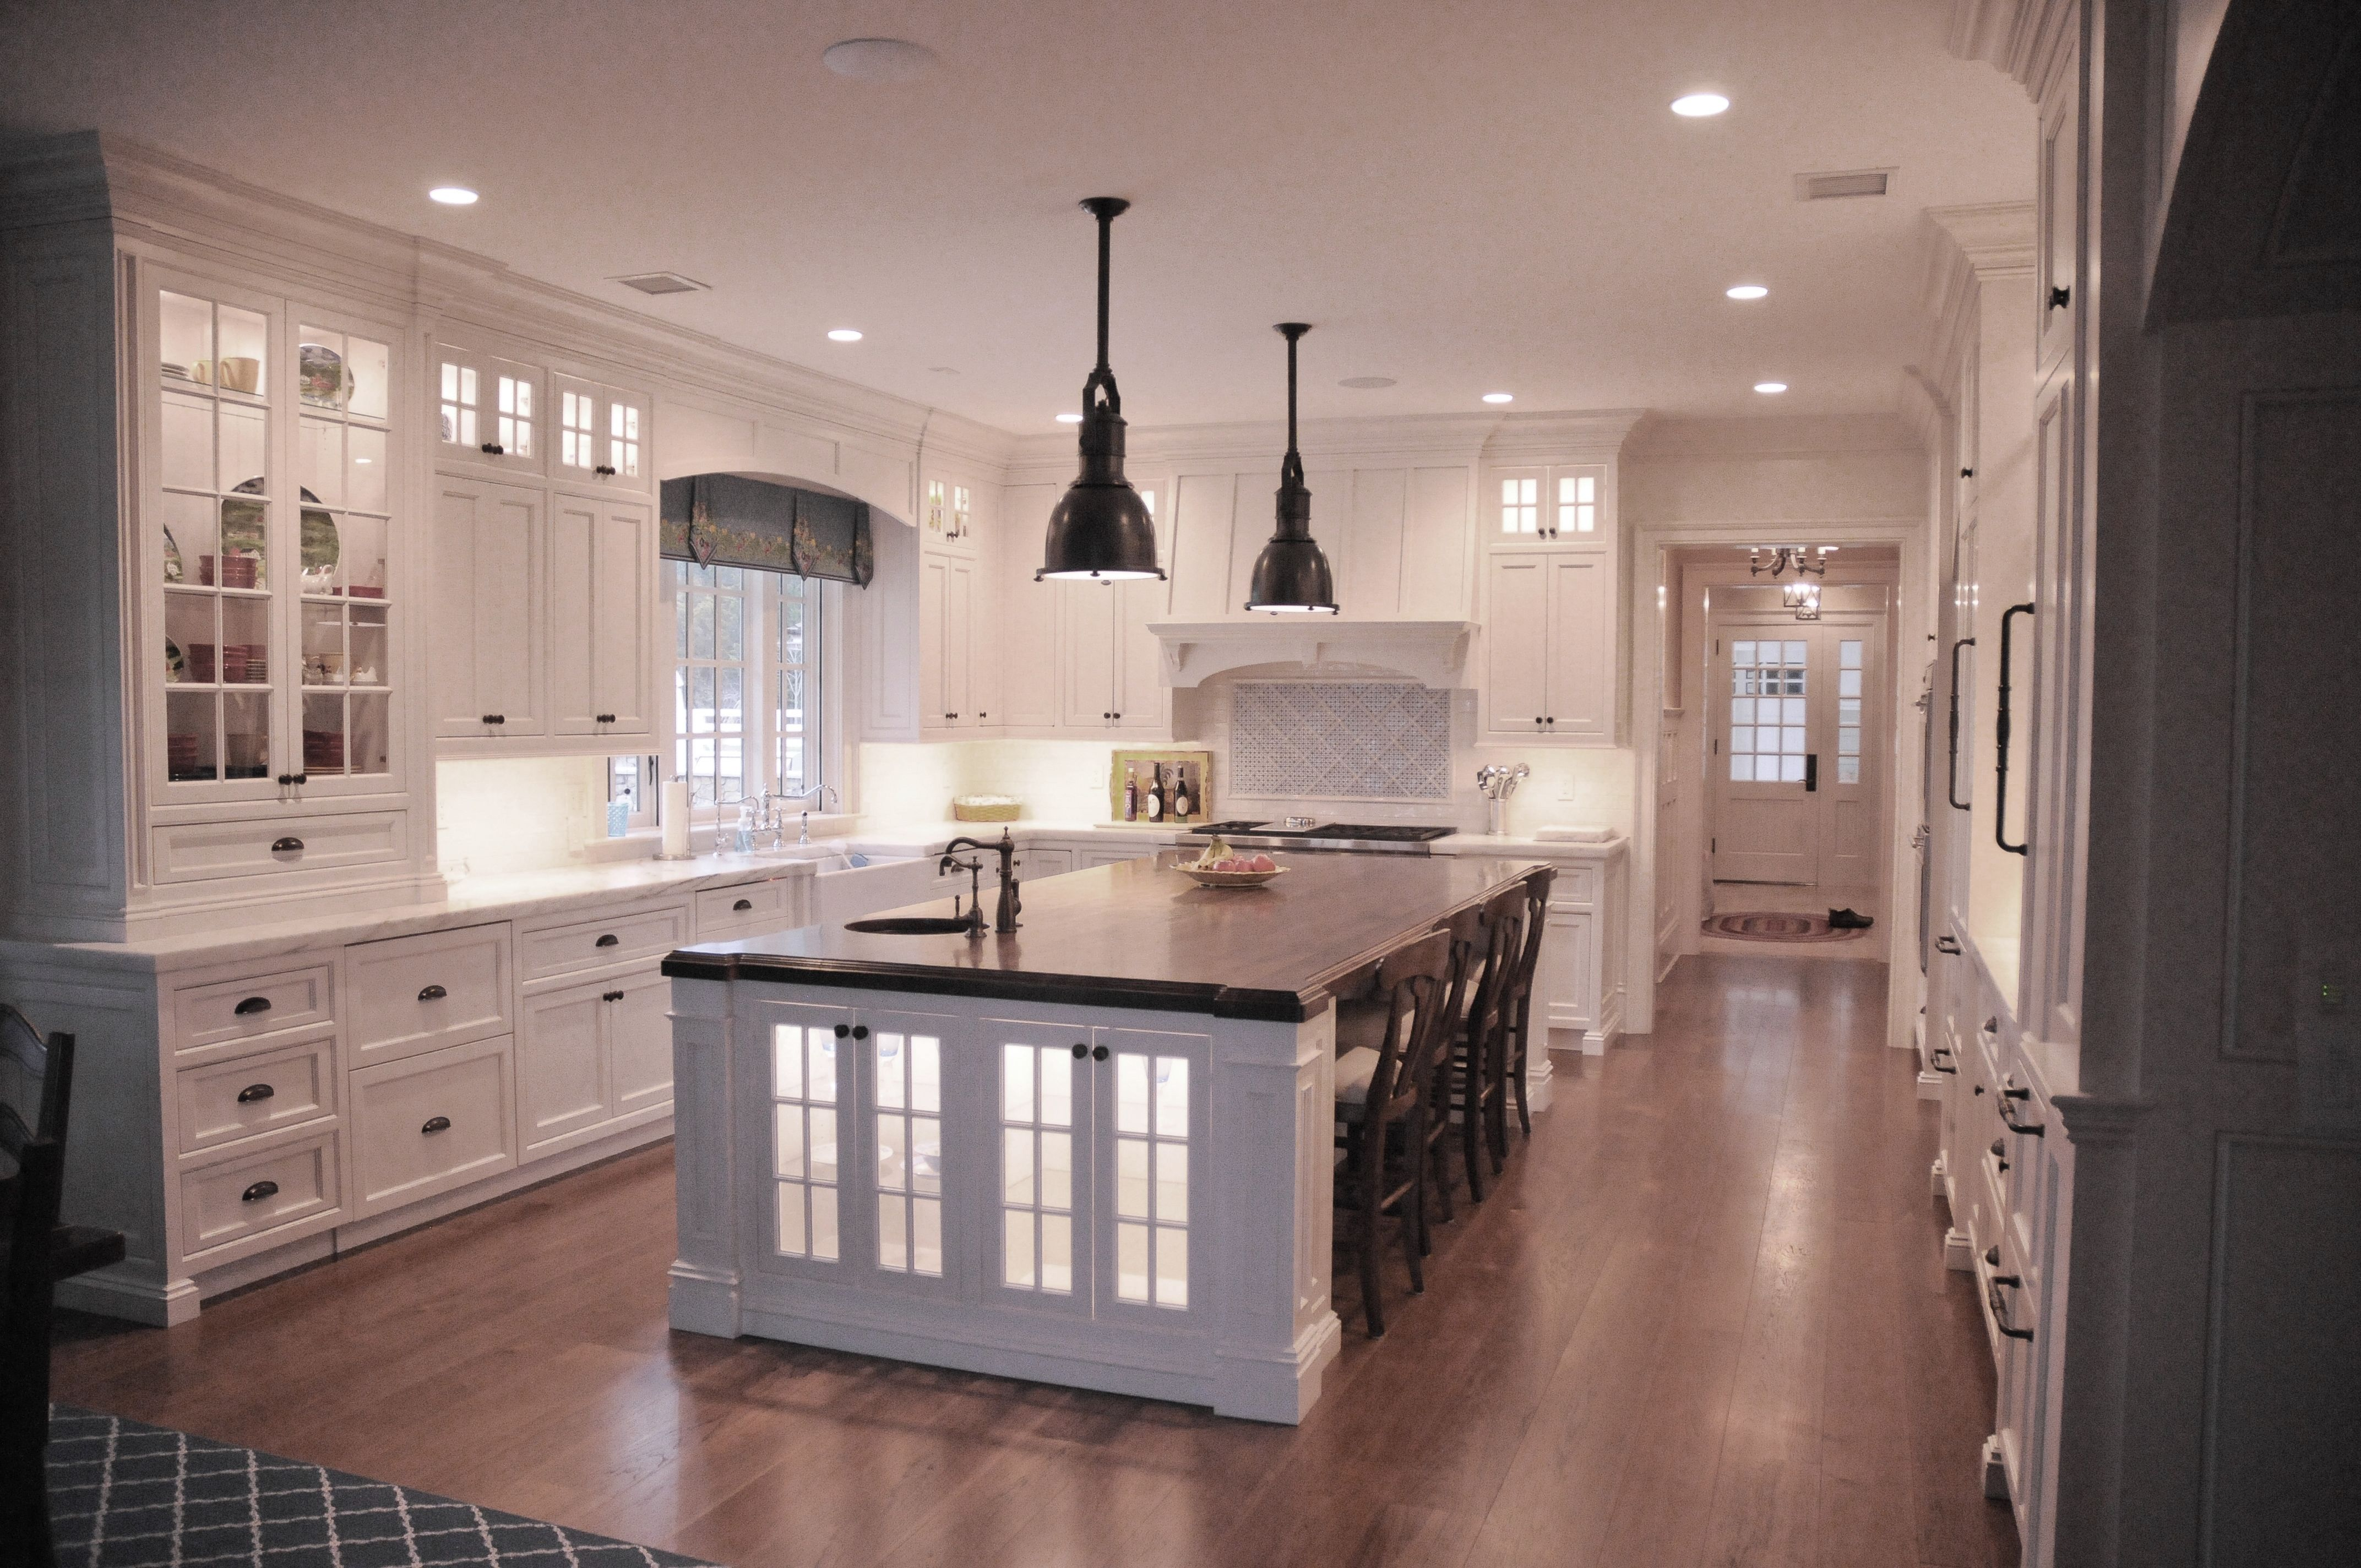 White Kitchen Beach House Glass Lower Cabinets Wood Island Top Retro Style Pendent Lighting Matte Black Fixtures Wood Island White Kitchen Wood Island Top